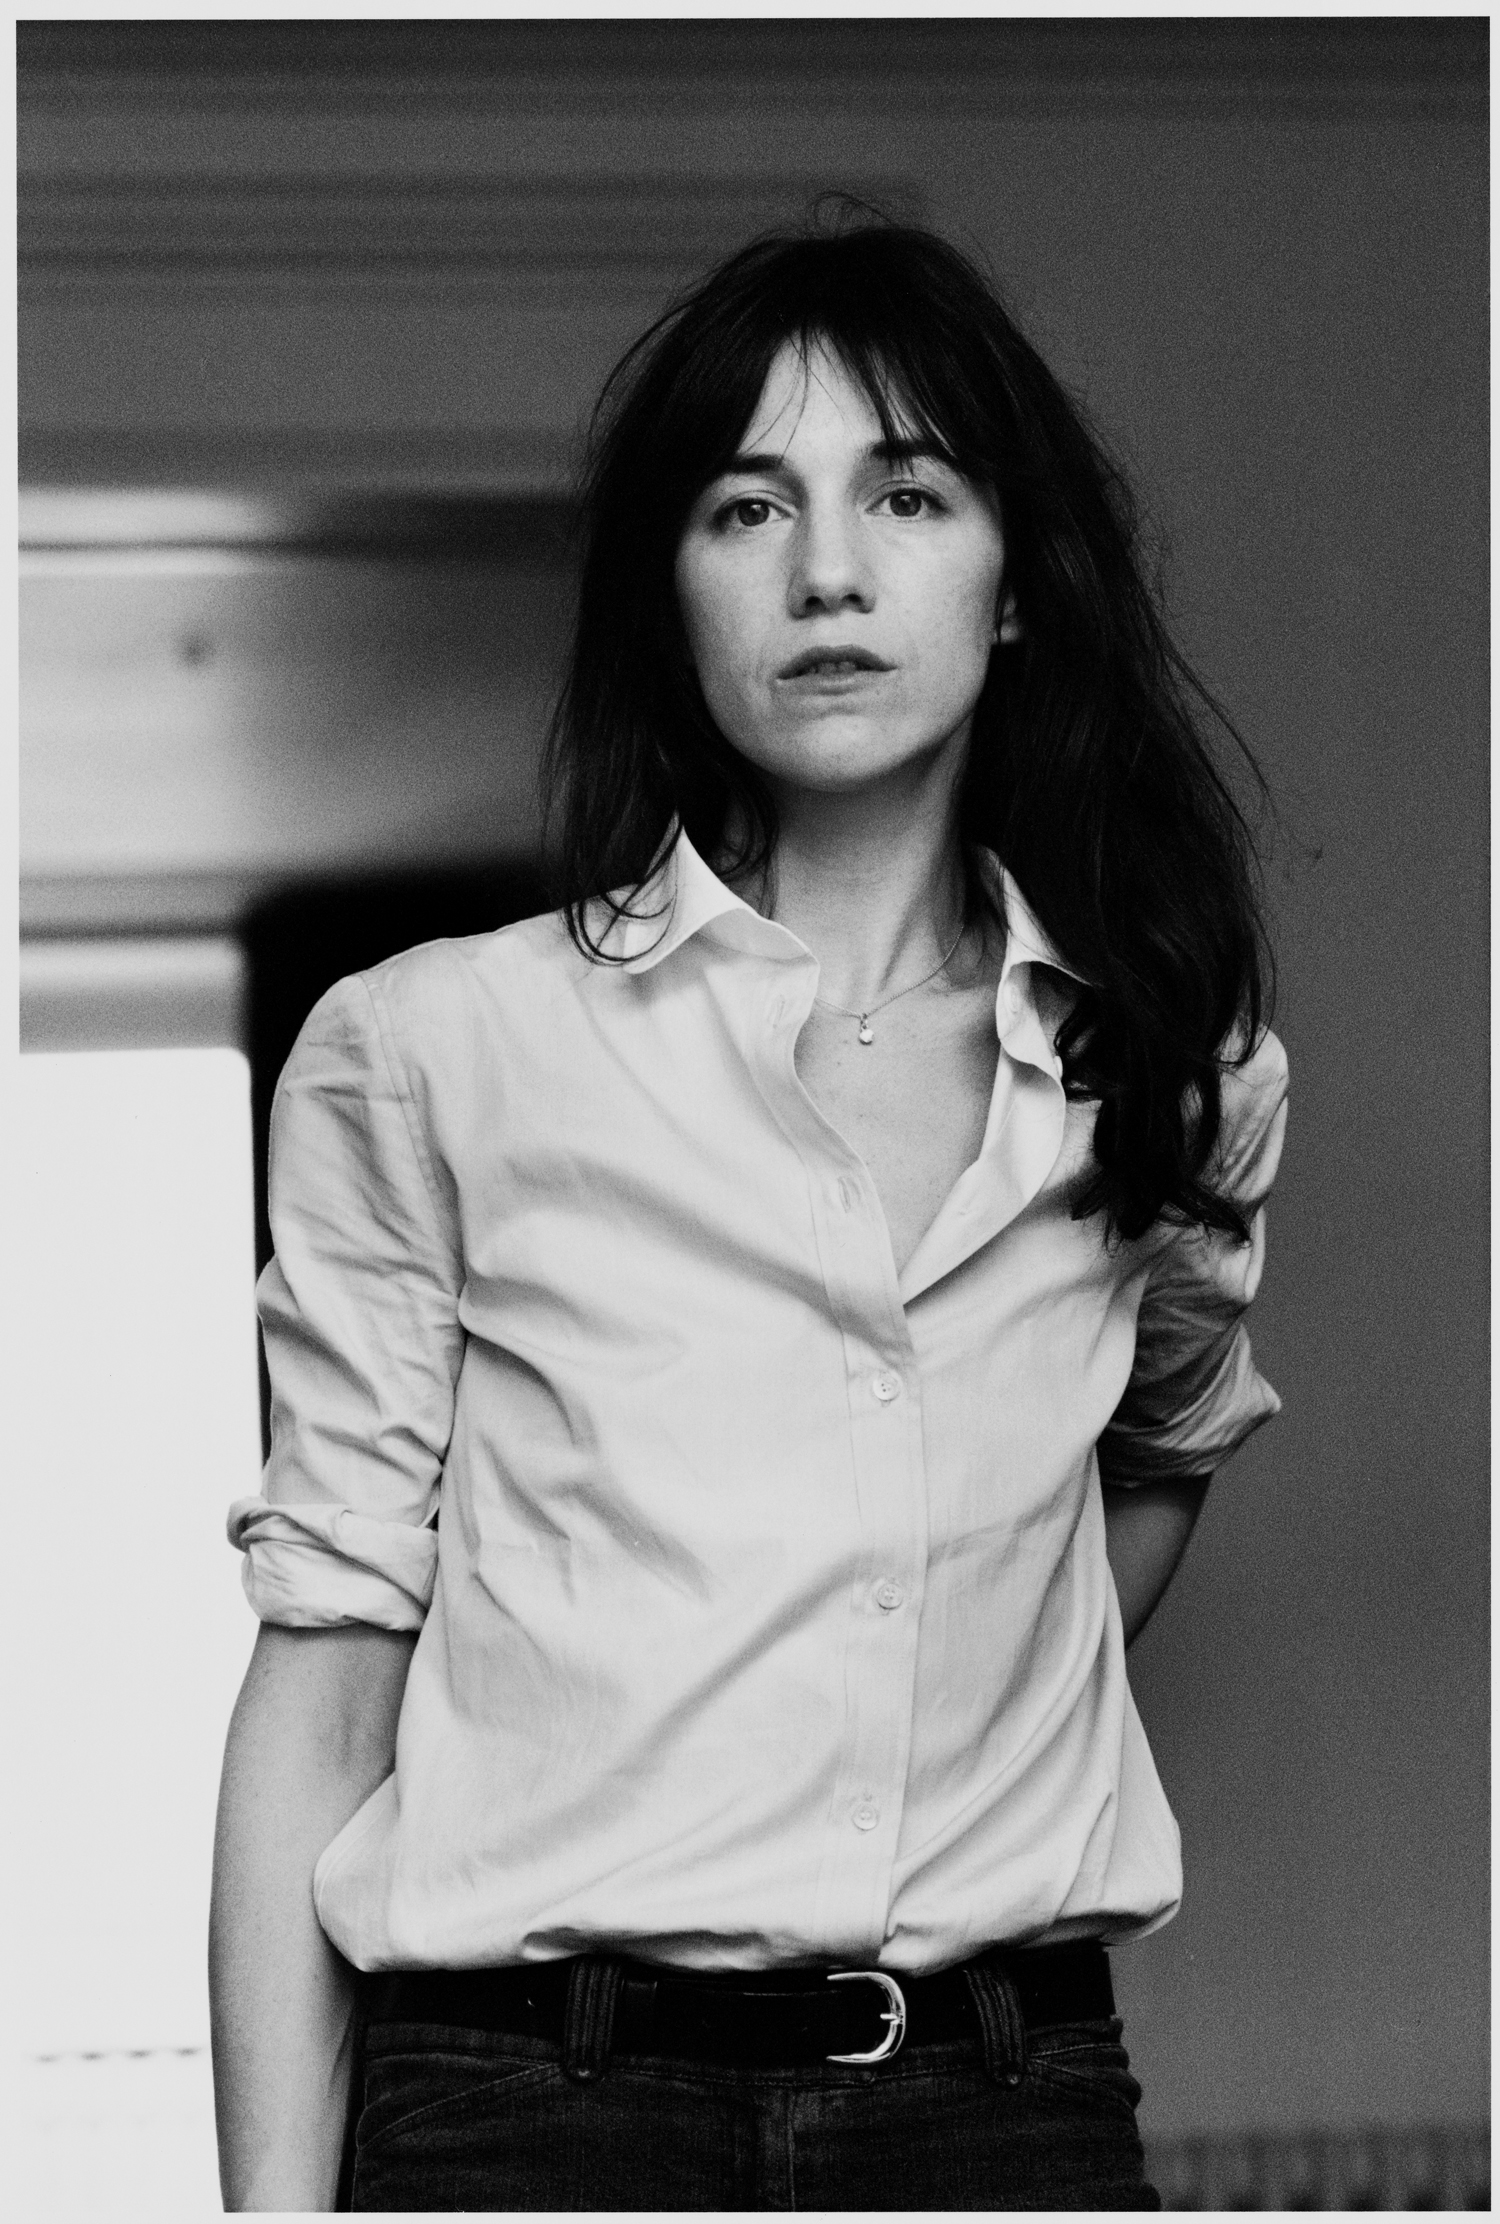 Charlotte Gainsbourg naked (13 foto and video), Topless, Paparazzi, Feet, braless 2019